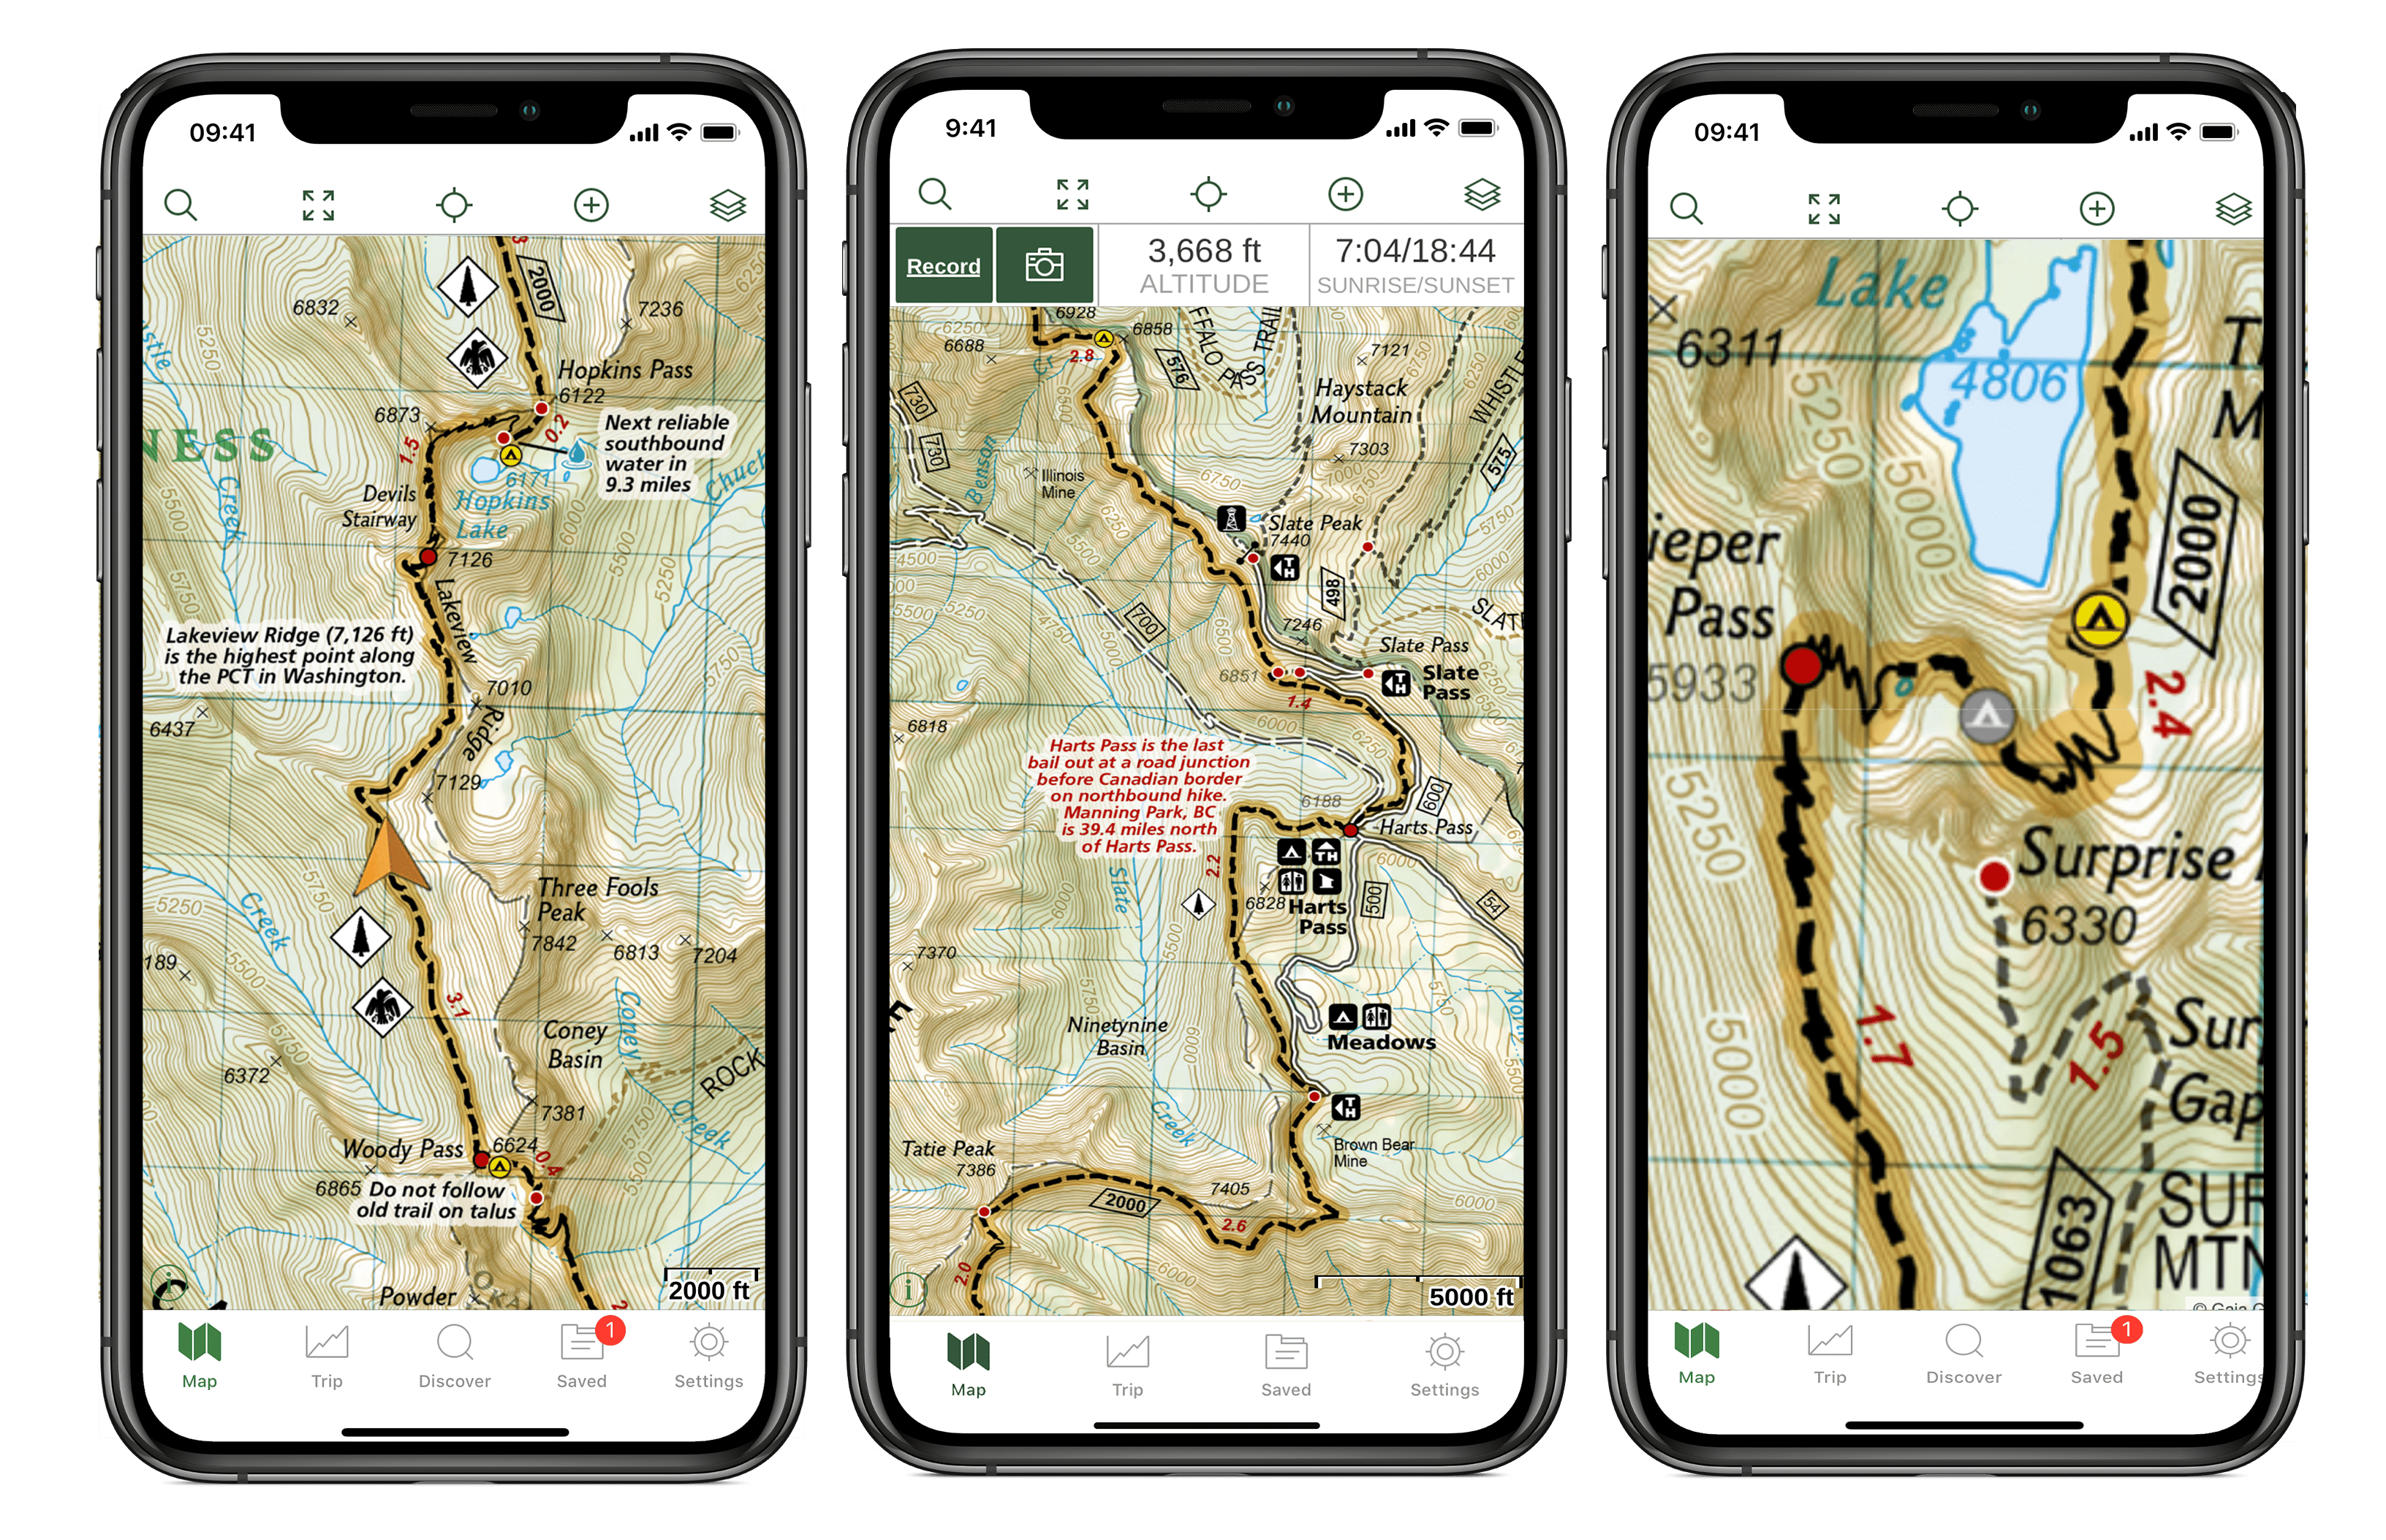 Pacific Crest Trail Maps Available in Gaia GPS, Starting with ...